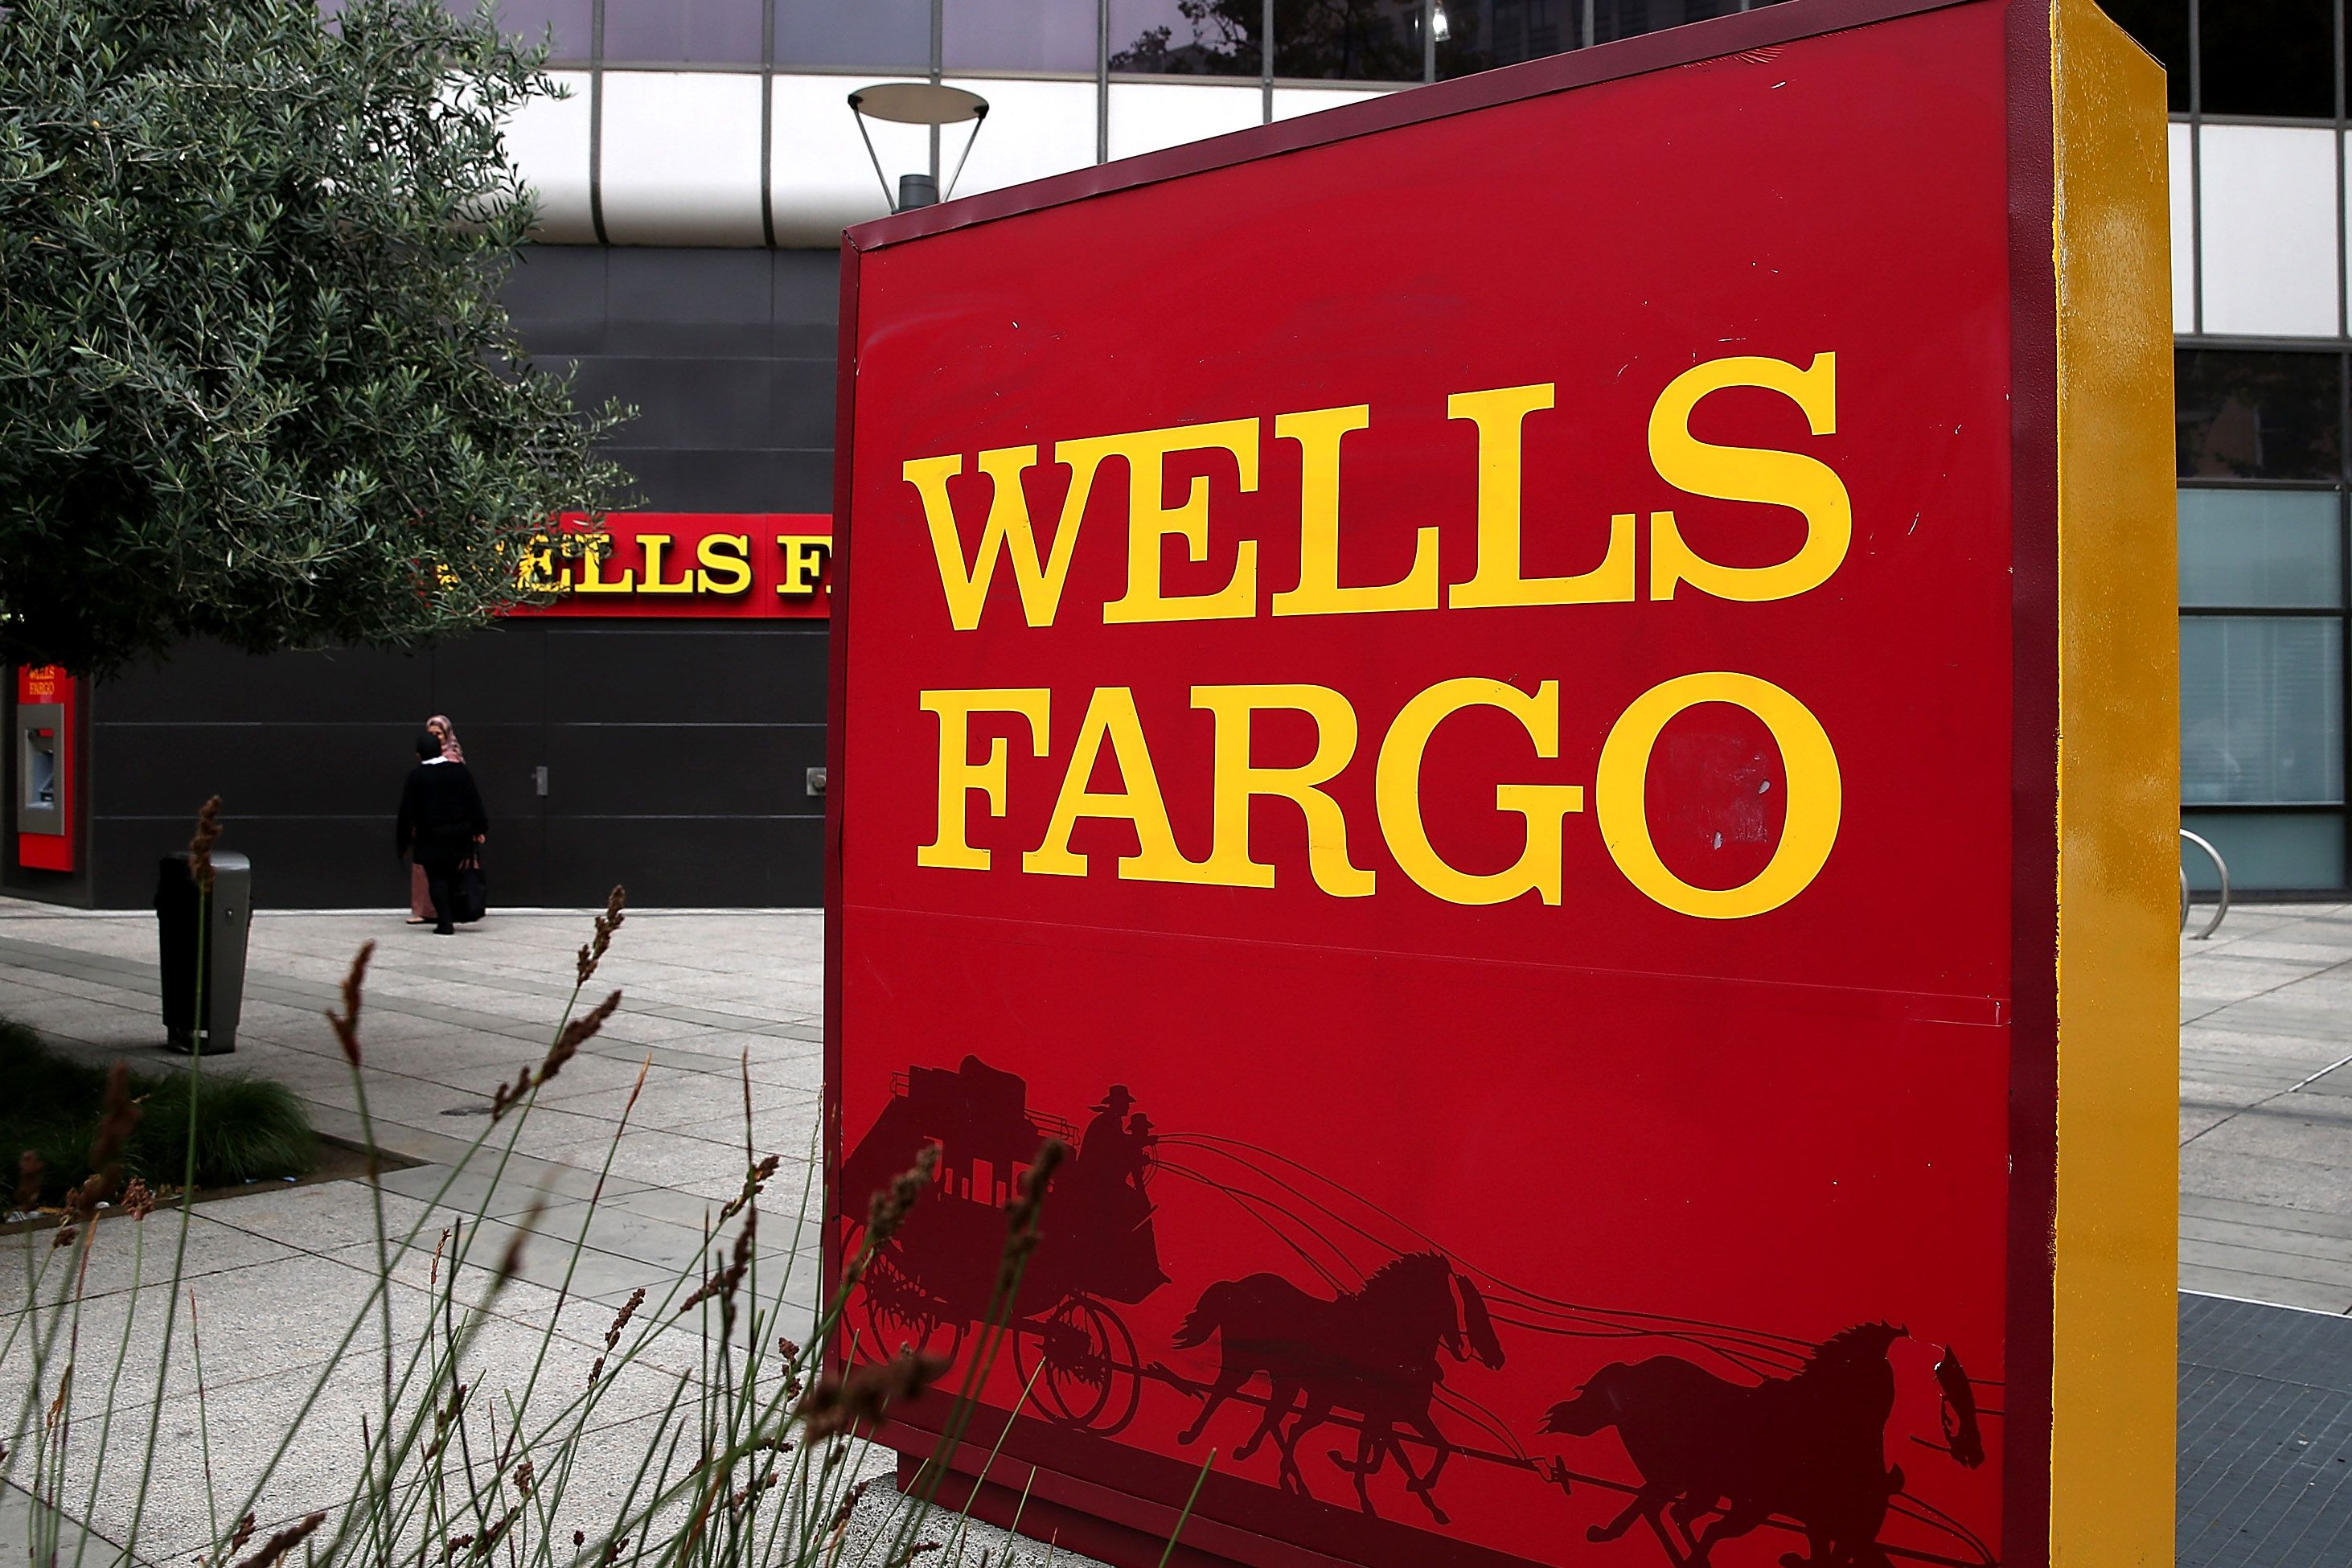 best ideas about wells fargo mortgage wells 17 best ideas about wells fargo mortgage wells fargo website wells fargo investments and wells fargo finance